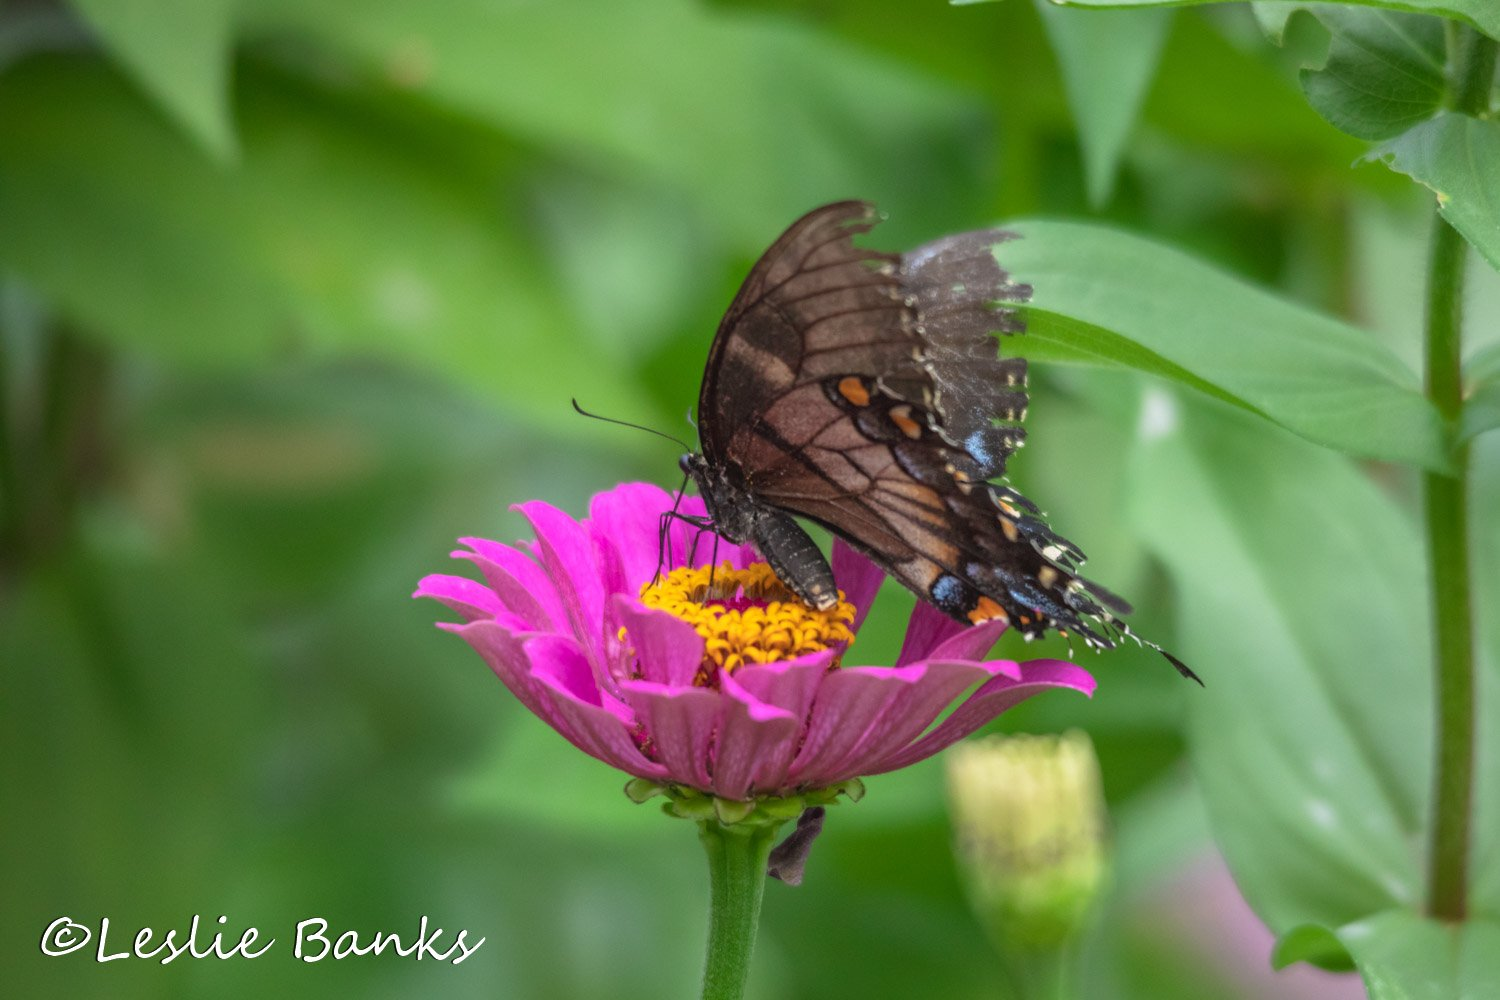 Swallowtail Butterfly Drinking Nectar